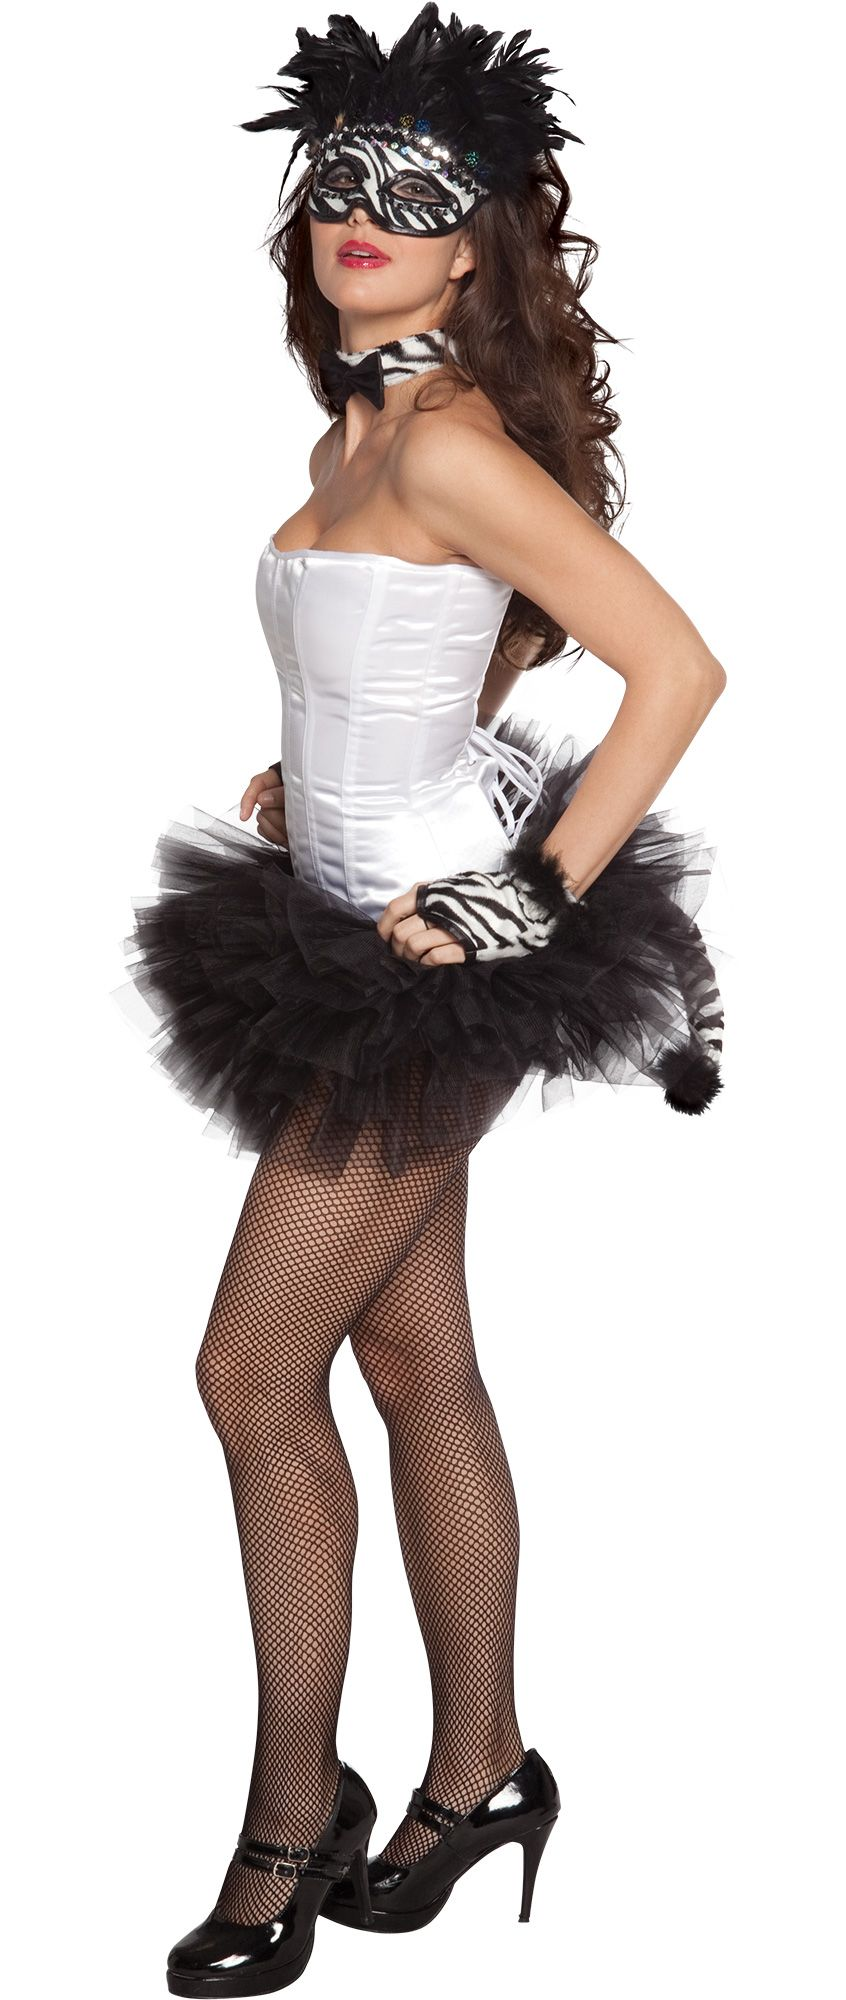 Make Your Costume - Womens Zebra Cutie Costume #2